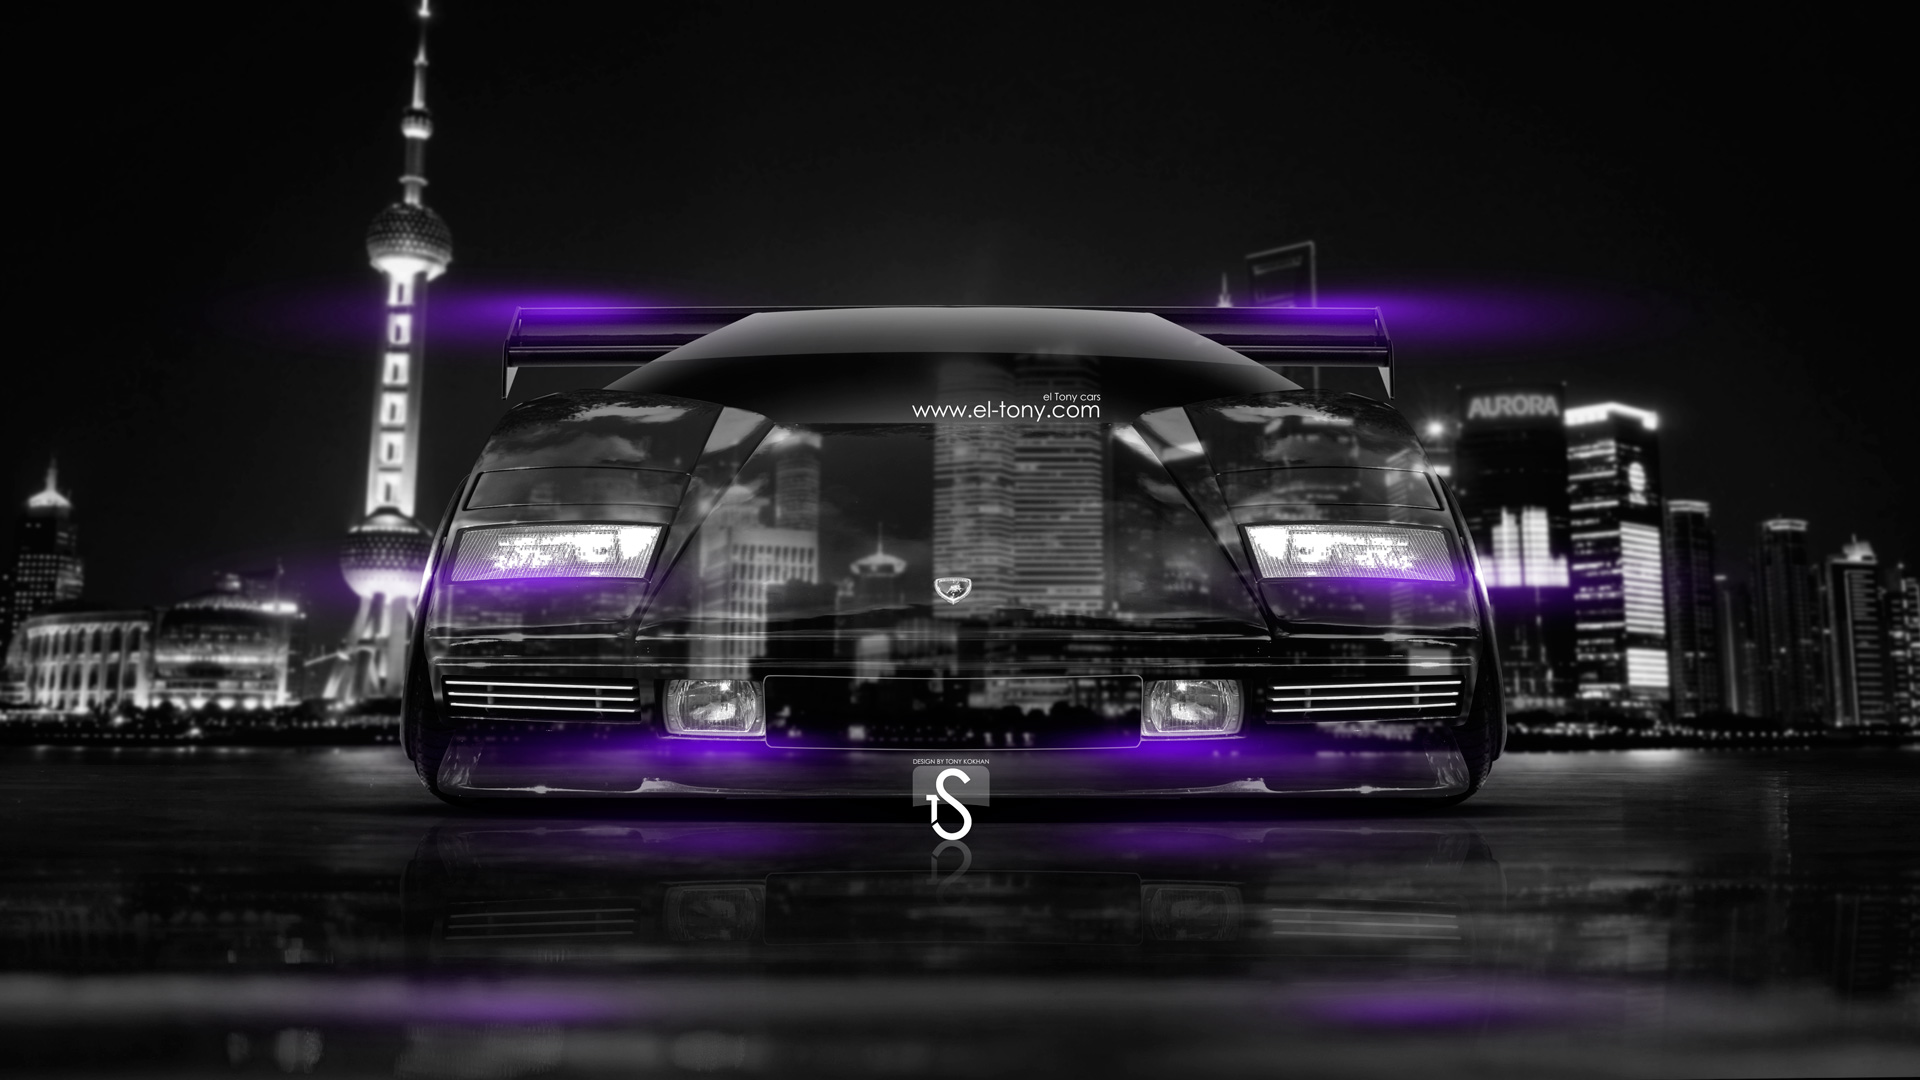 Lamborghini-Countach-Tuning-Crystal-City-Car-2014-Violet-Neon-design-by-Tony-Kokhan-[www.el-tony.com]